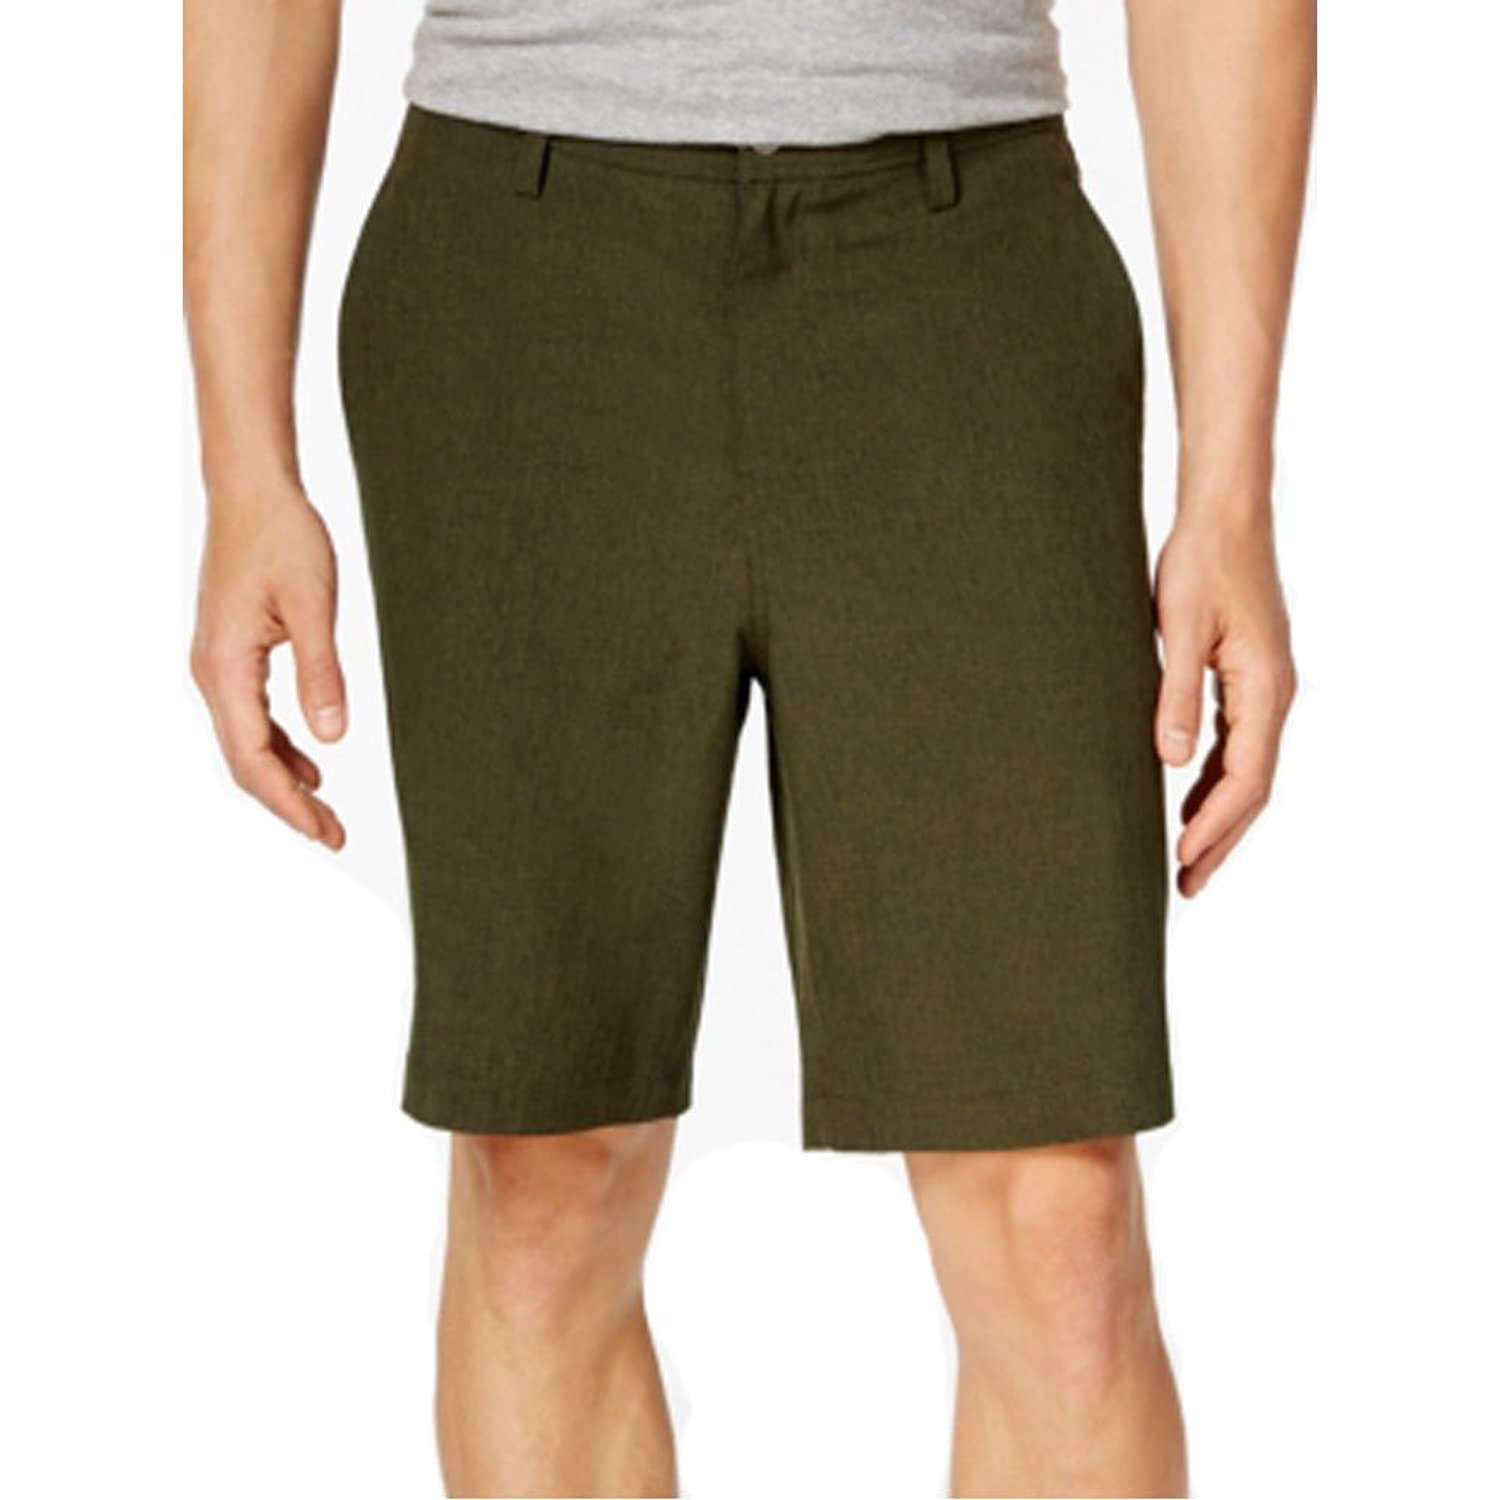 32 Degrees Mens Flat-front Shorts Moss